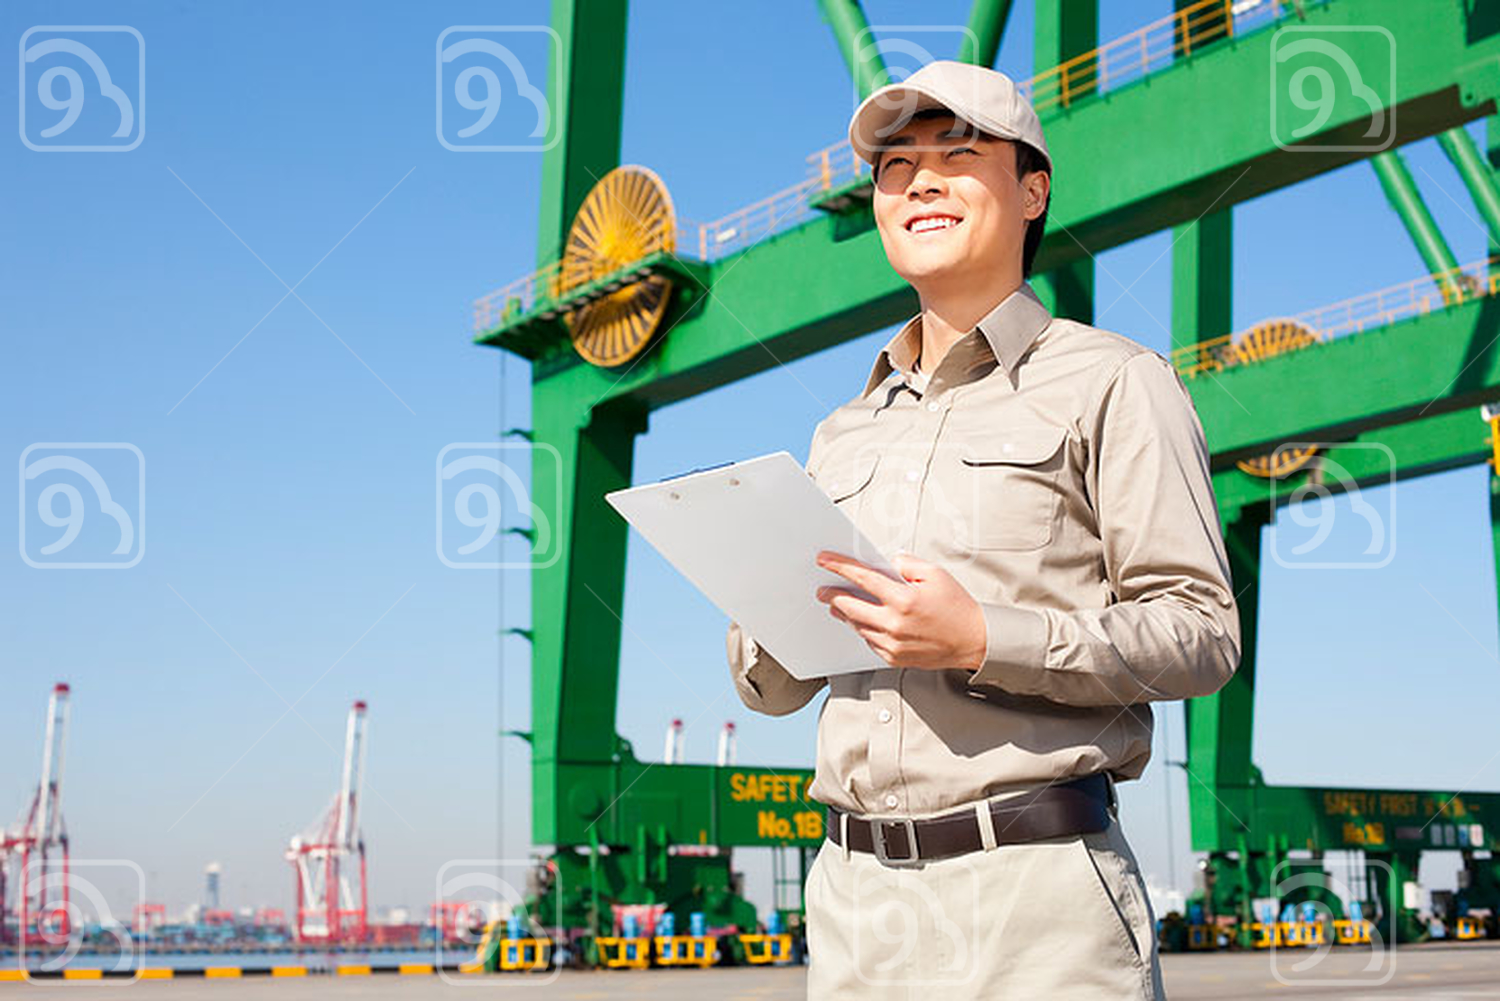 Male Chinese shipping industry worker with shipping dock and crane in the background